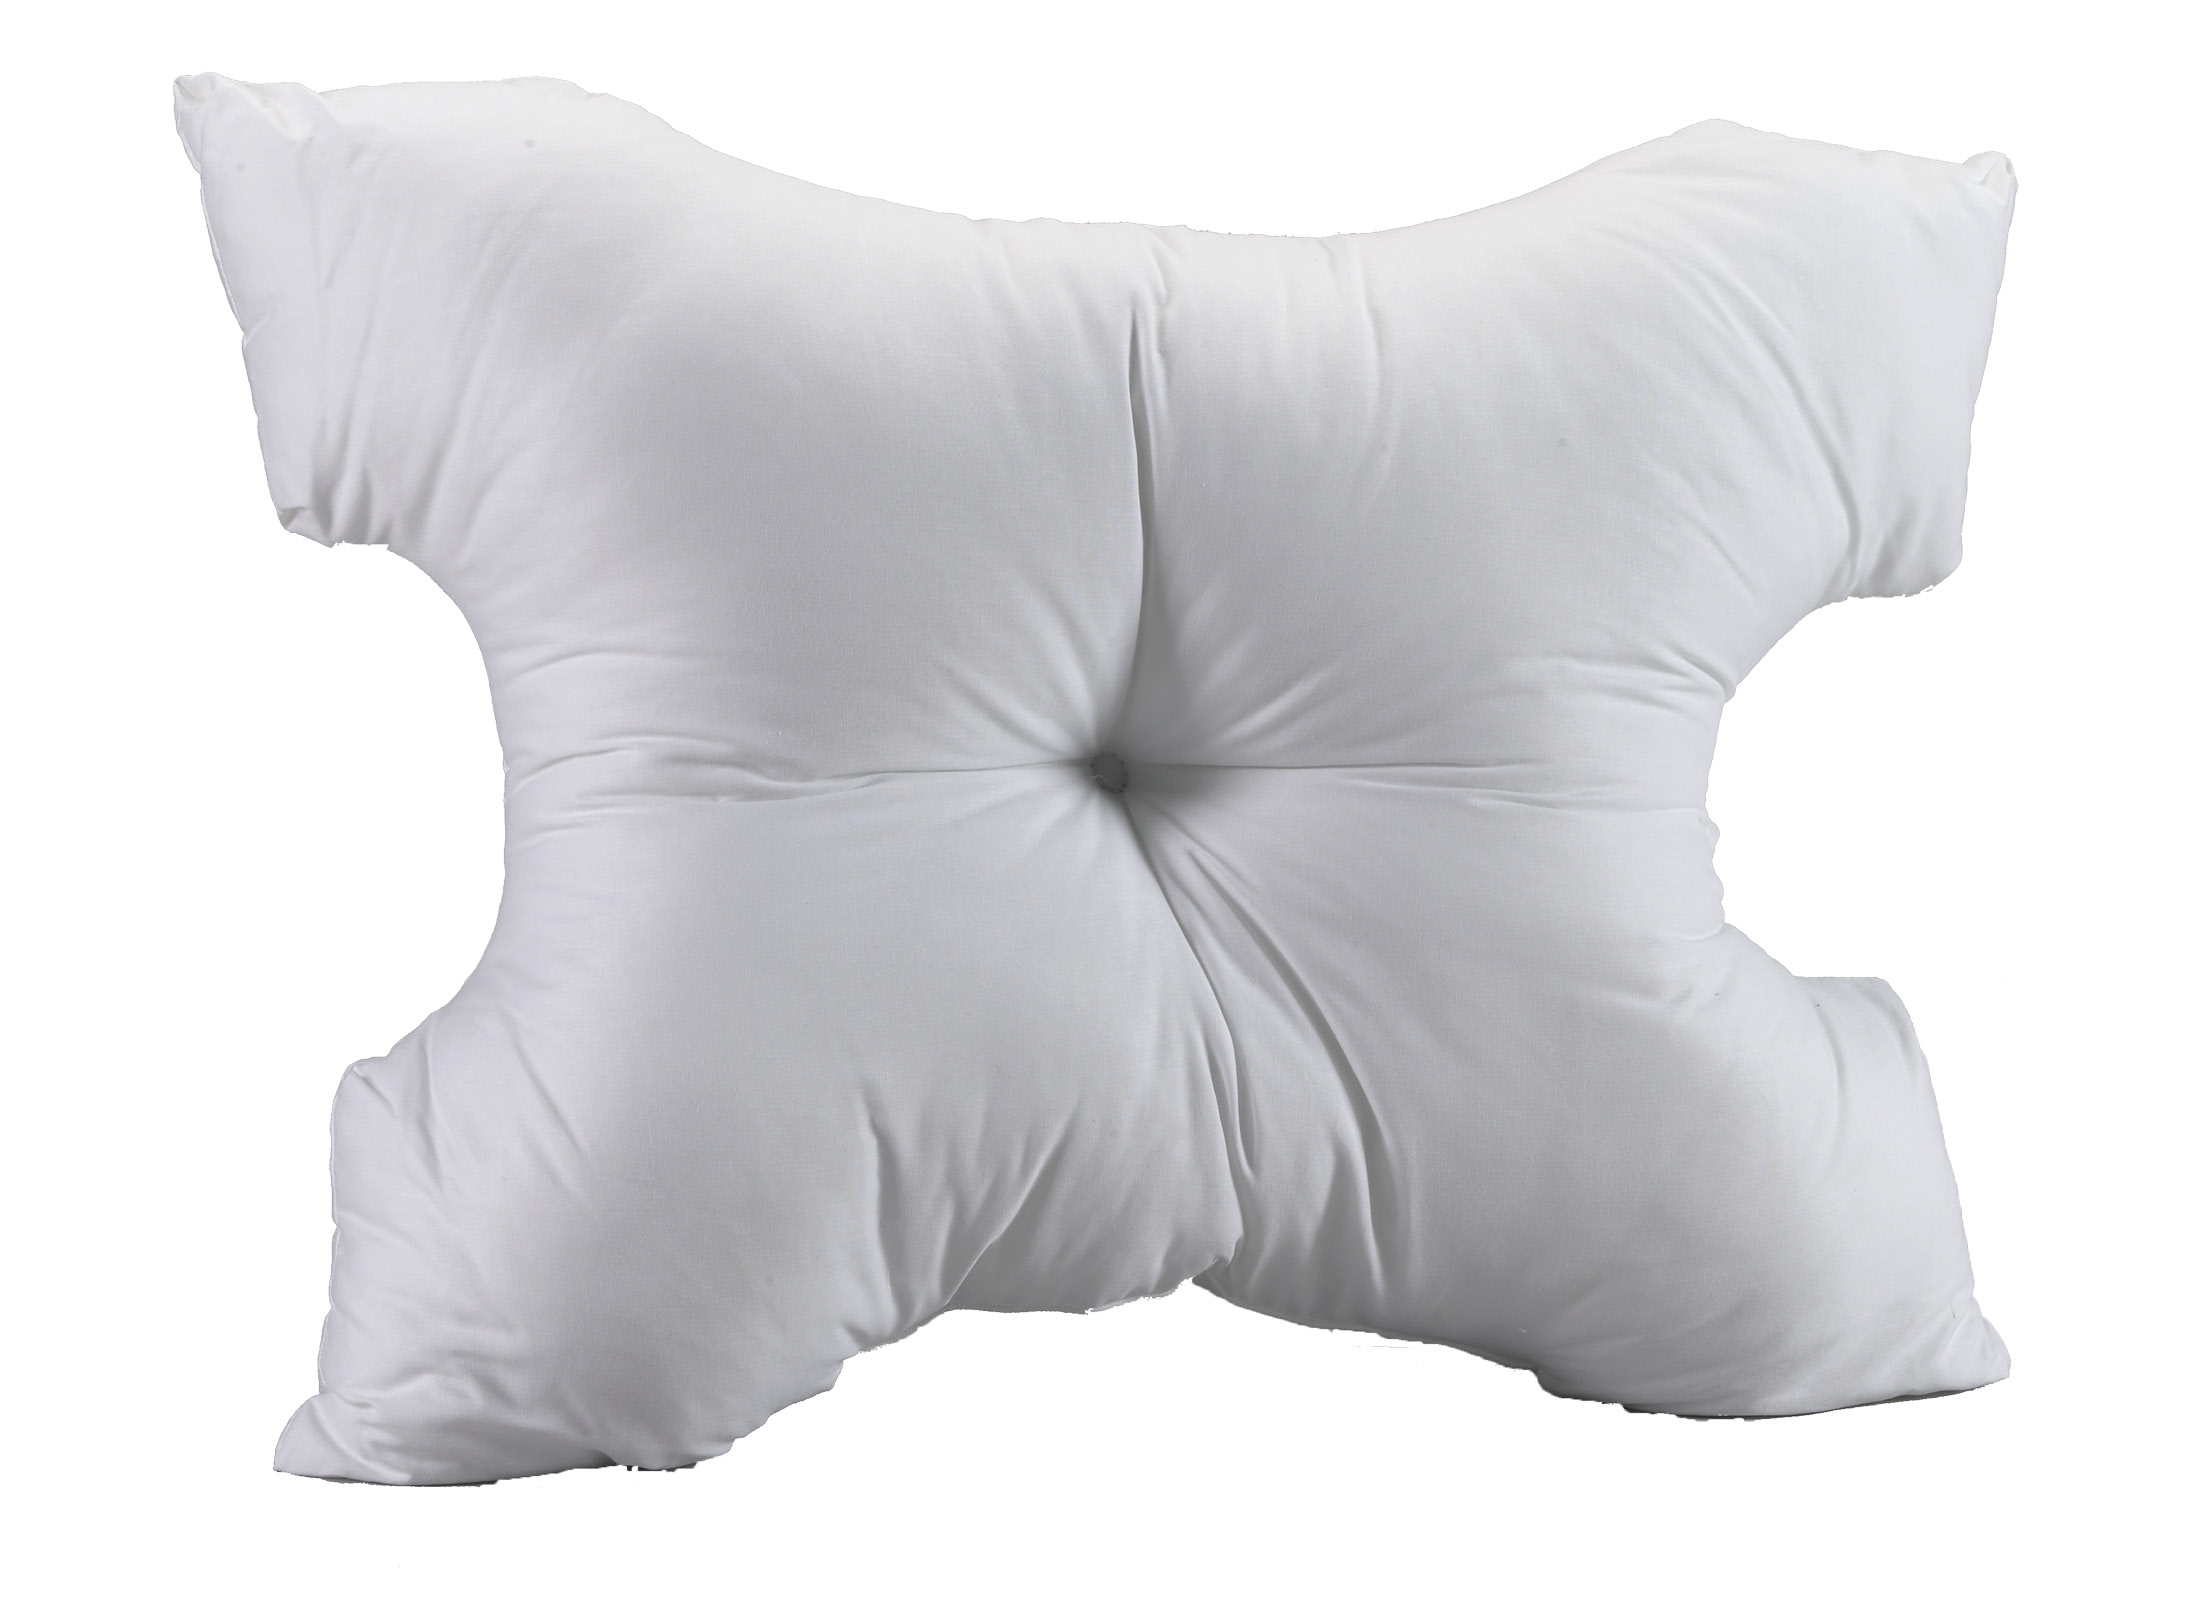 cpap pillow with cover